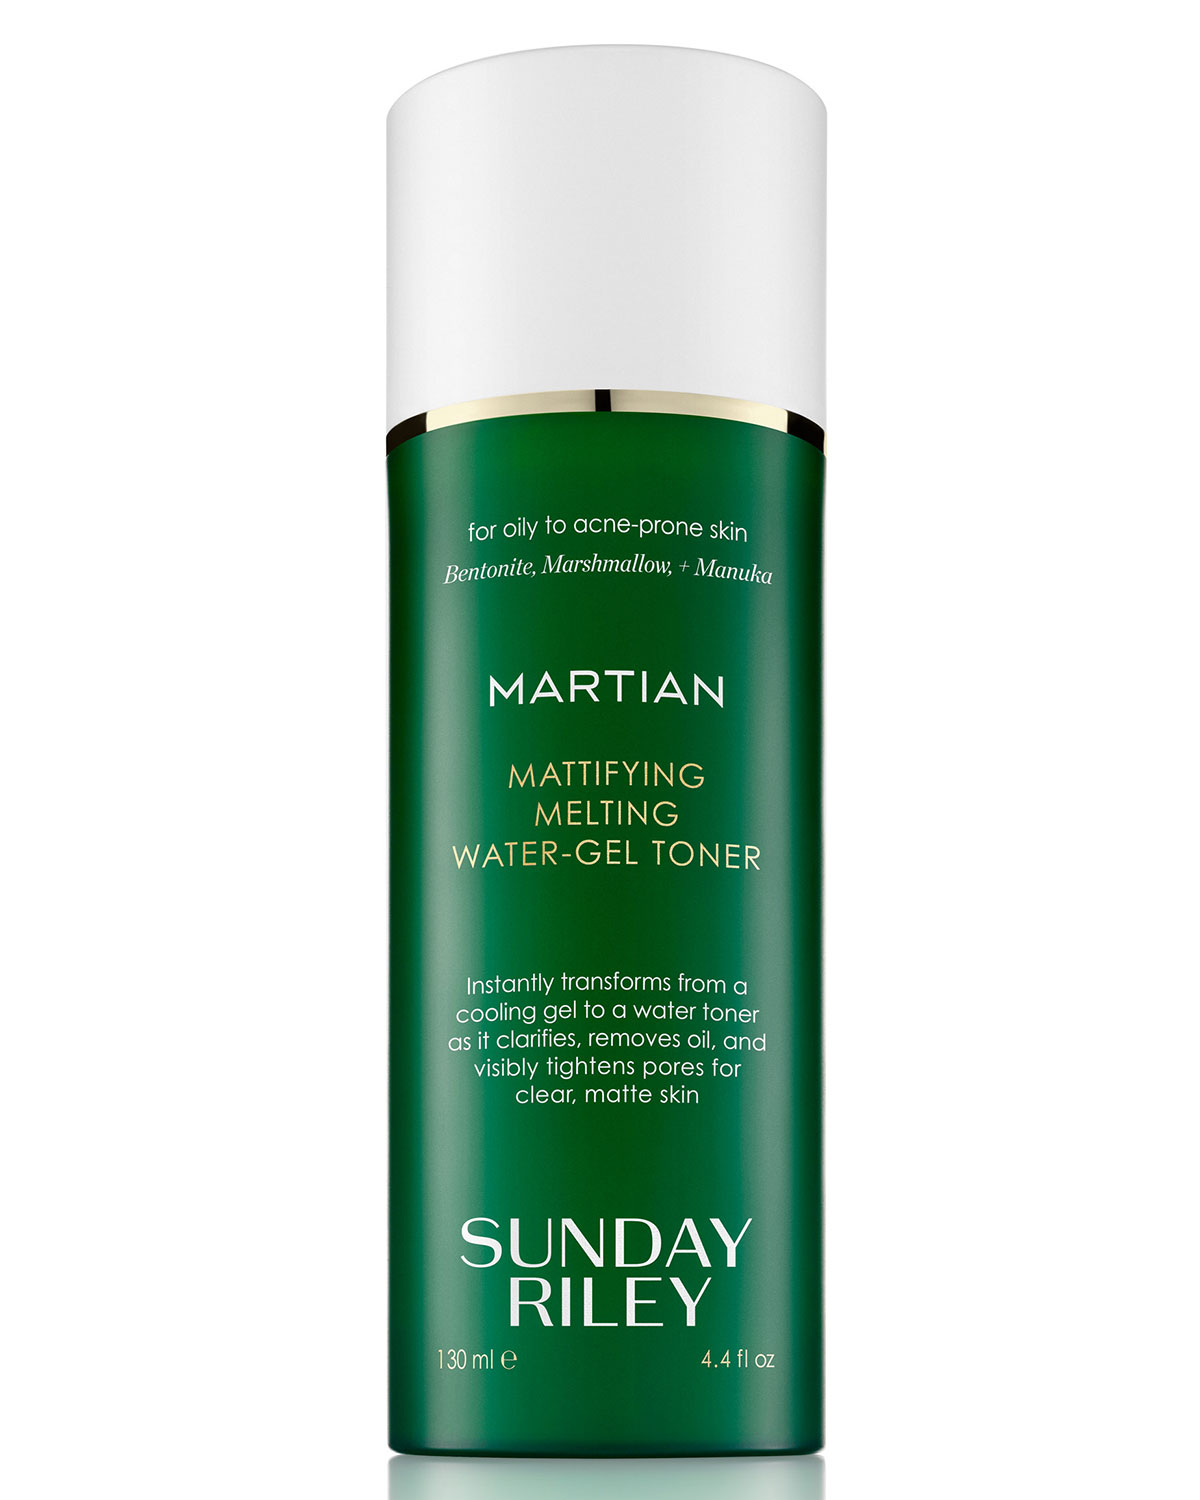 Martian Mattifying Melting Water-Gel Toner, 4.4 oz./ 130 mL